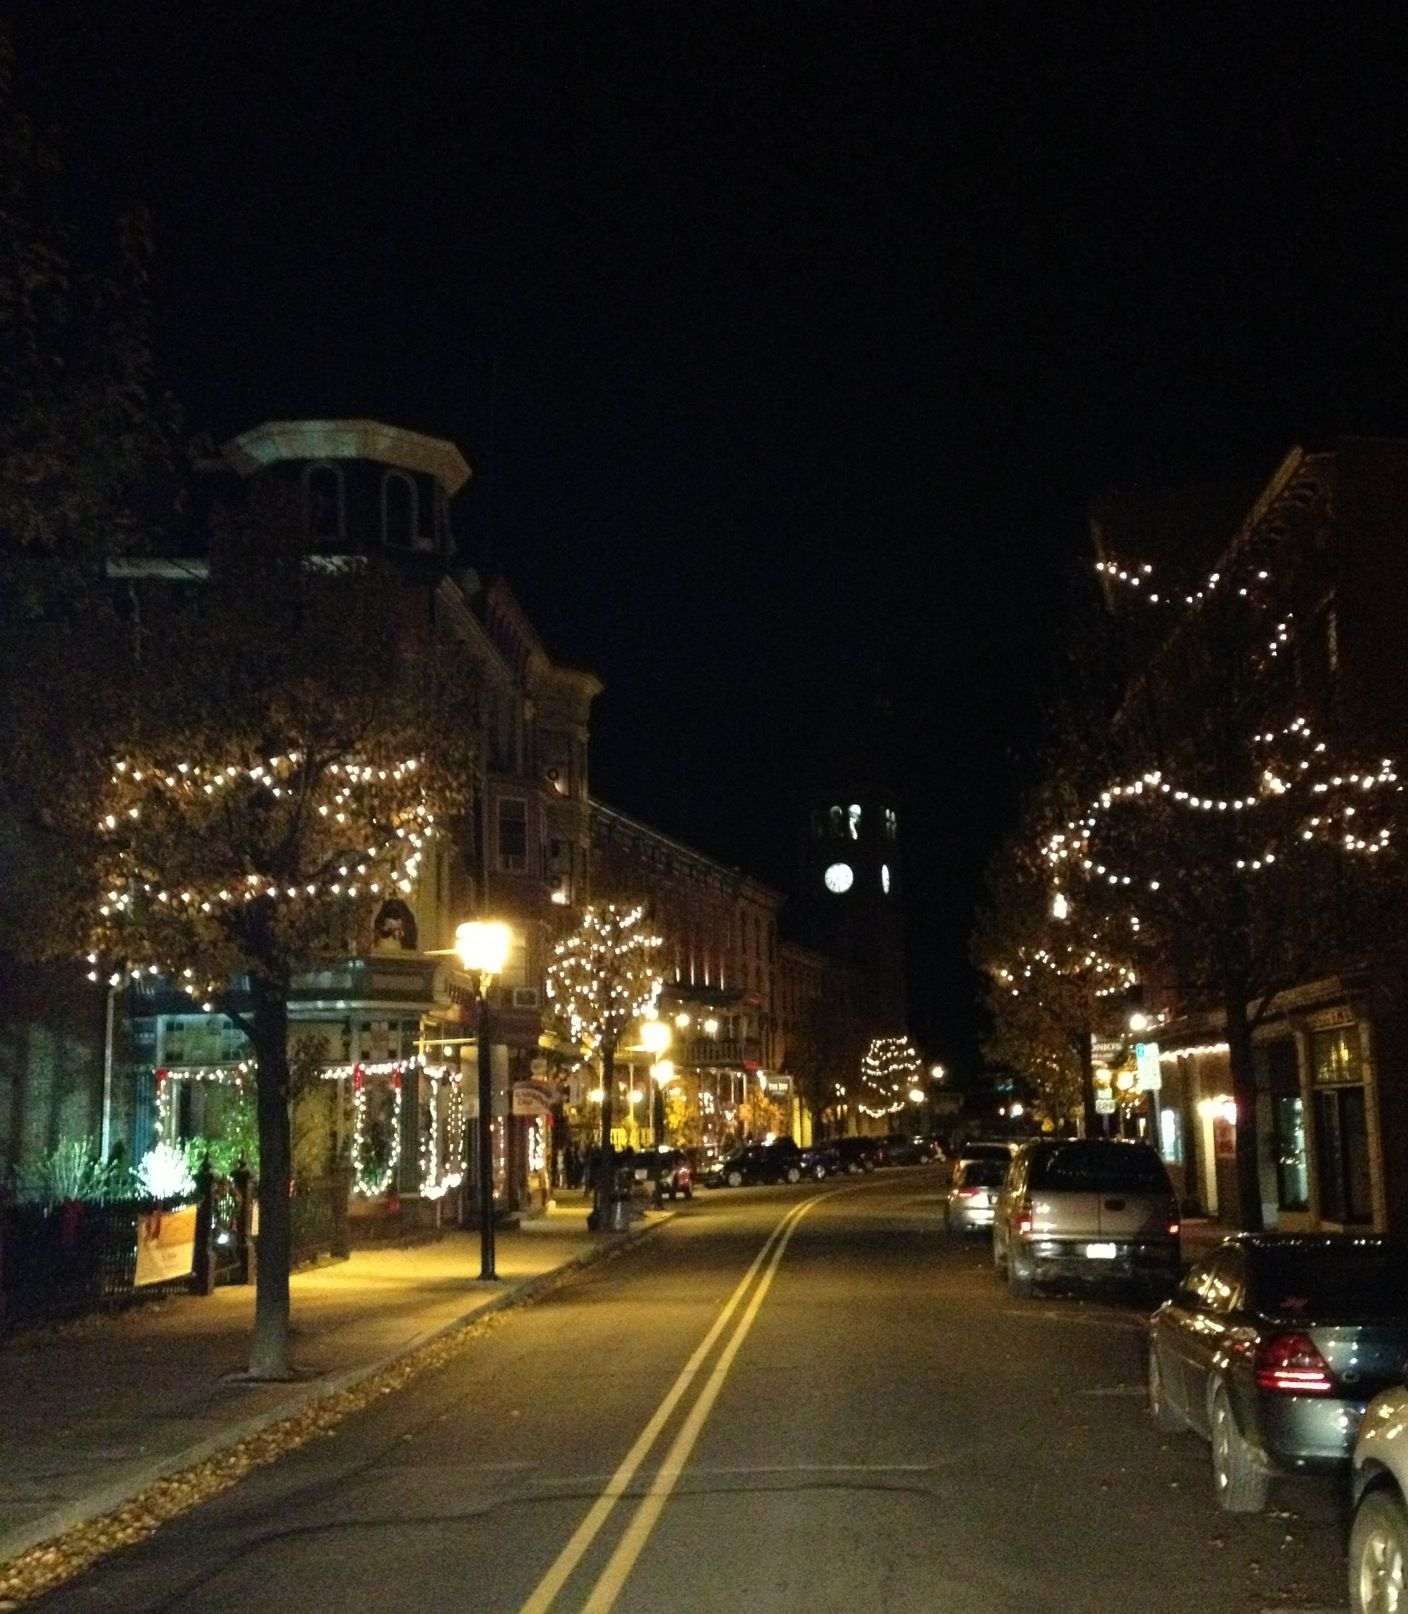 Jim Thorpe starting to light up for the holiday season!